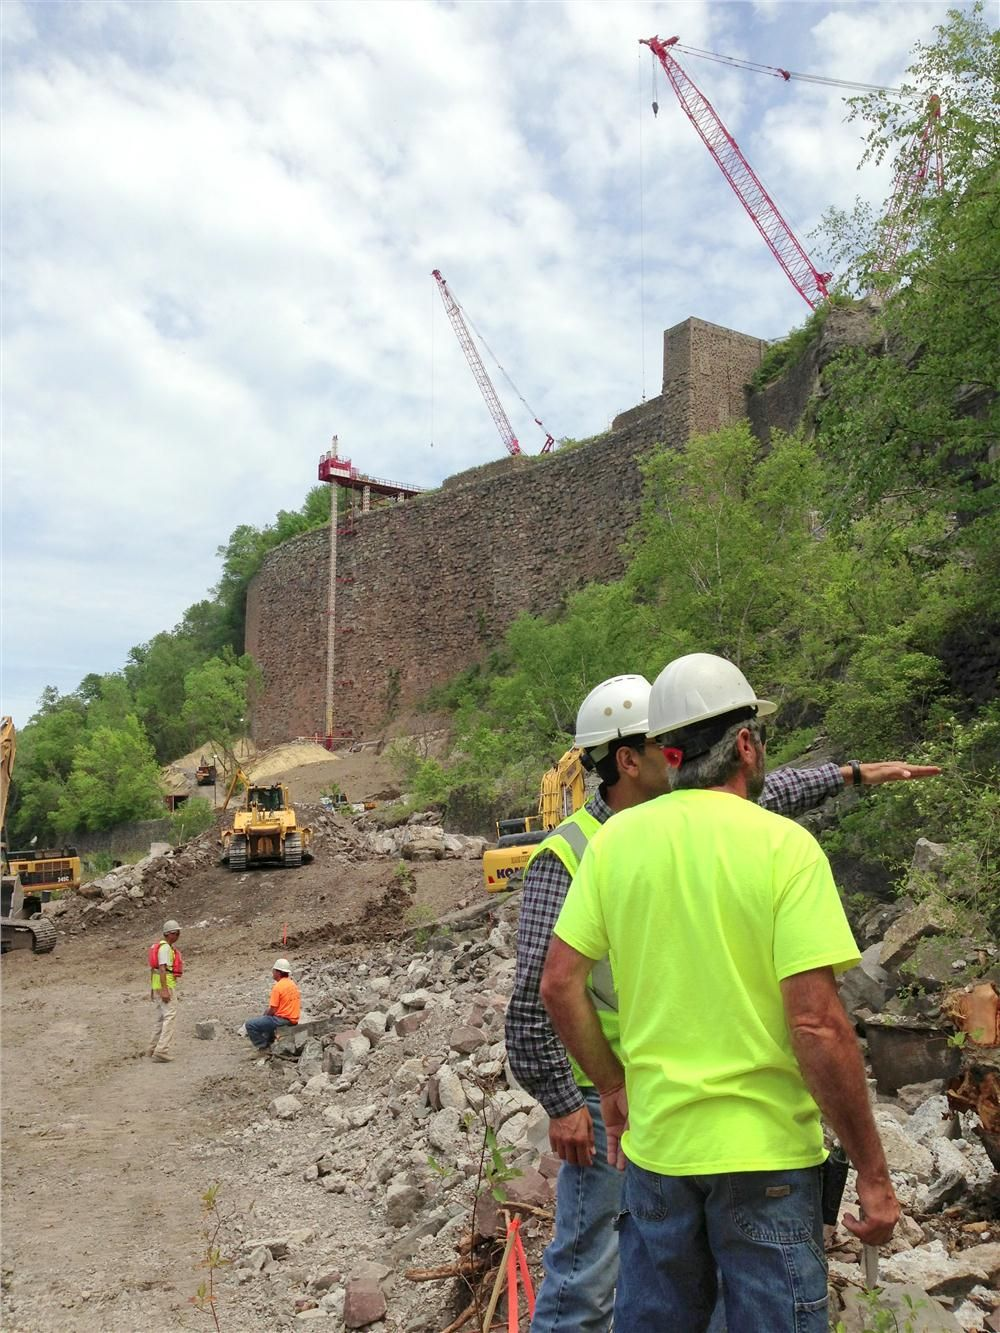 The work site is not run-of-the-mill. The property is sandwiched between Niagara River waters separating Canada and the United States and the vertical gorge wall on the American side. Access to the work area is limited.